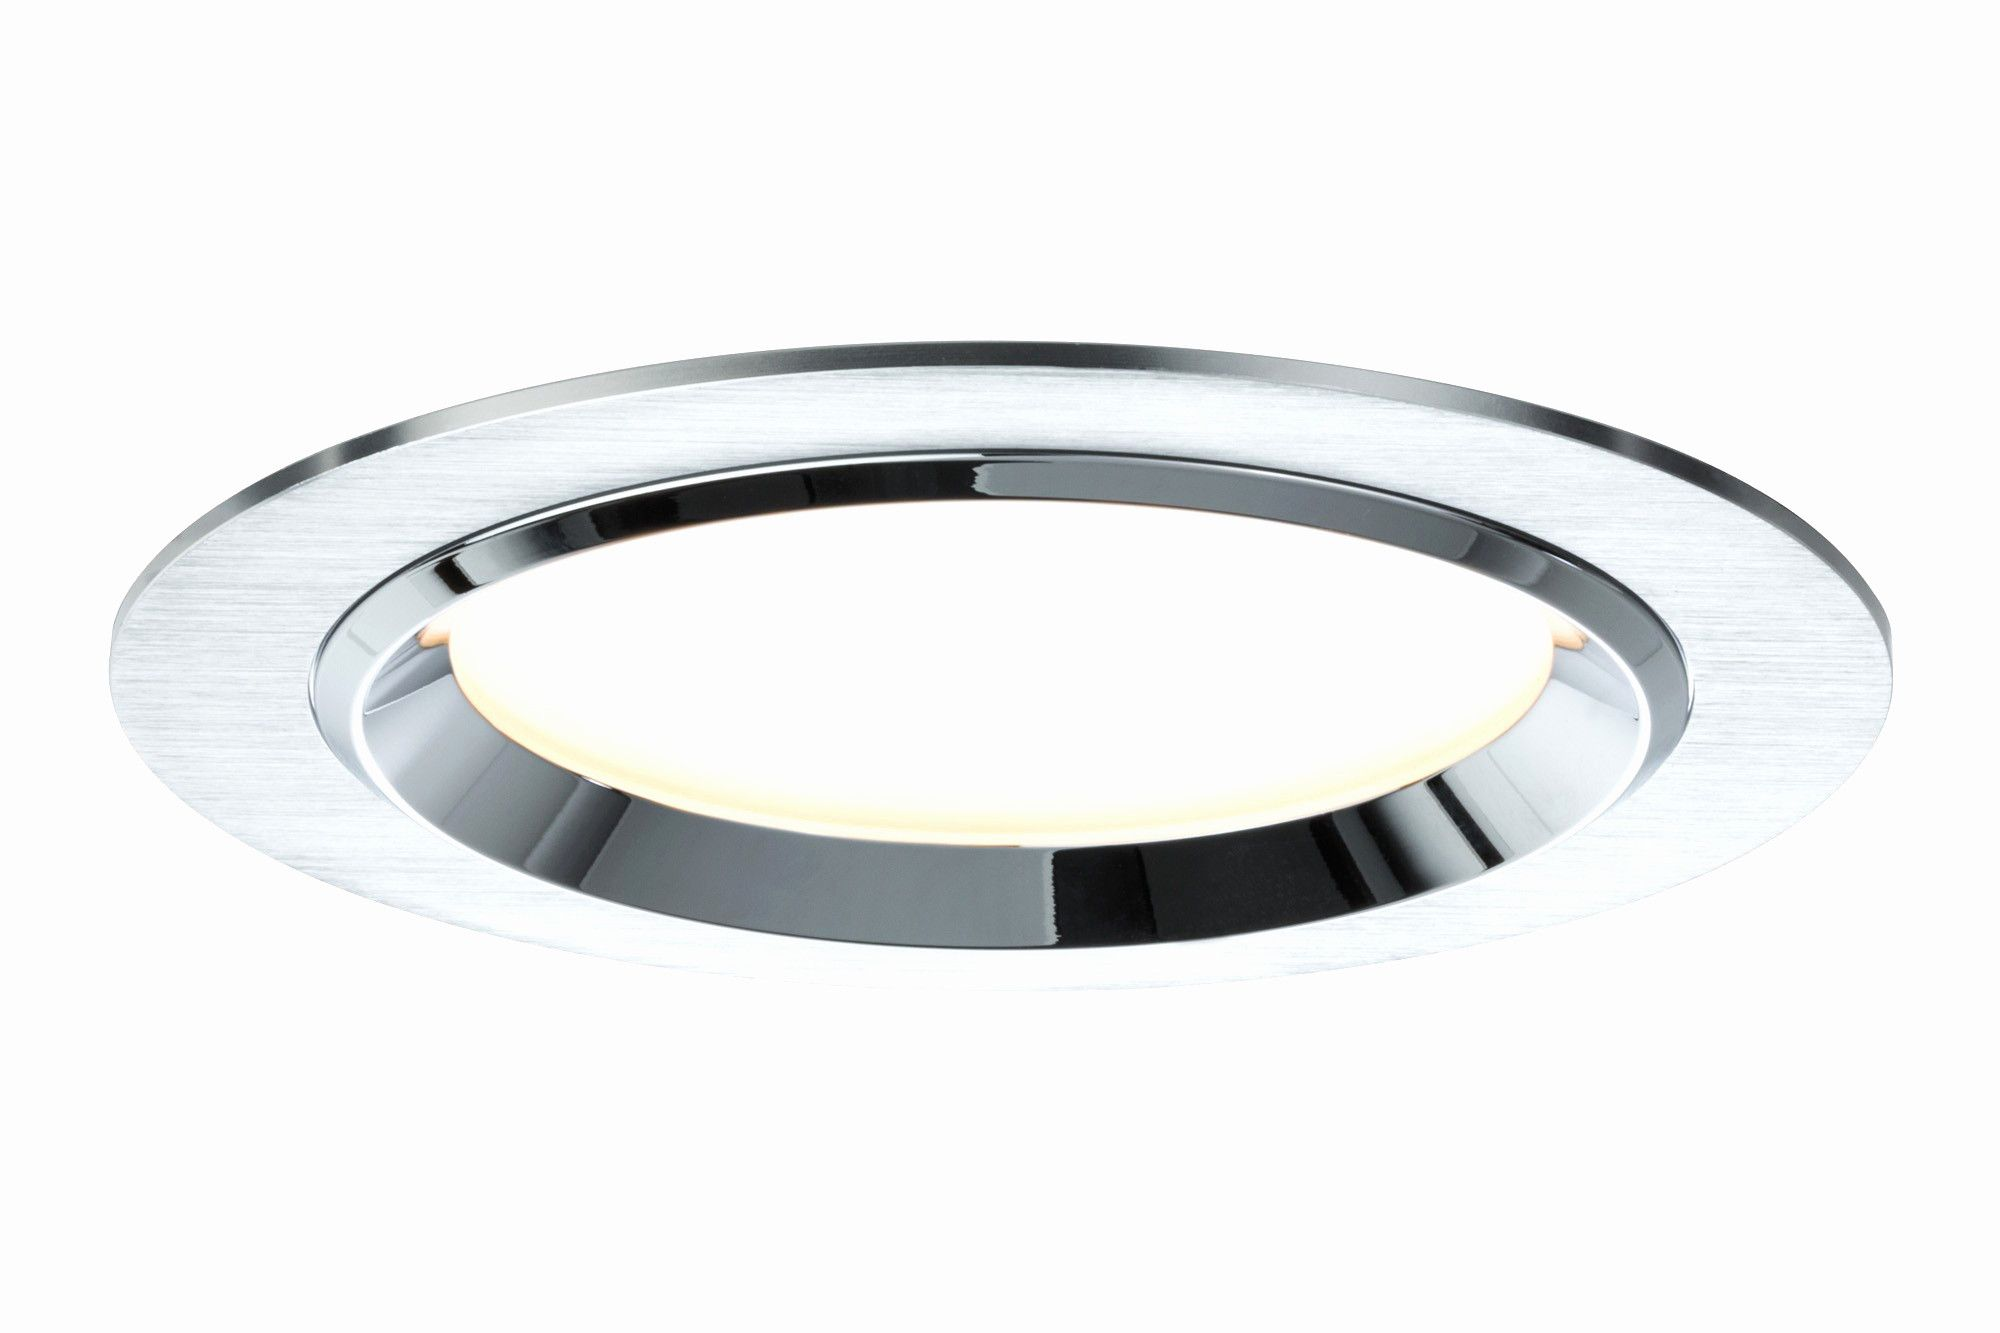 Luxury Spot Led Encastrable Plafond Extra Plat 220v Led Rings For Men Spots